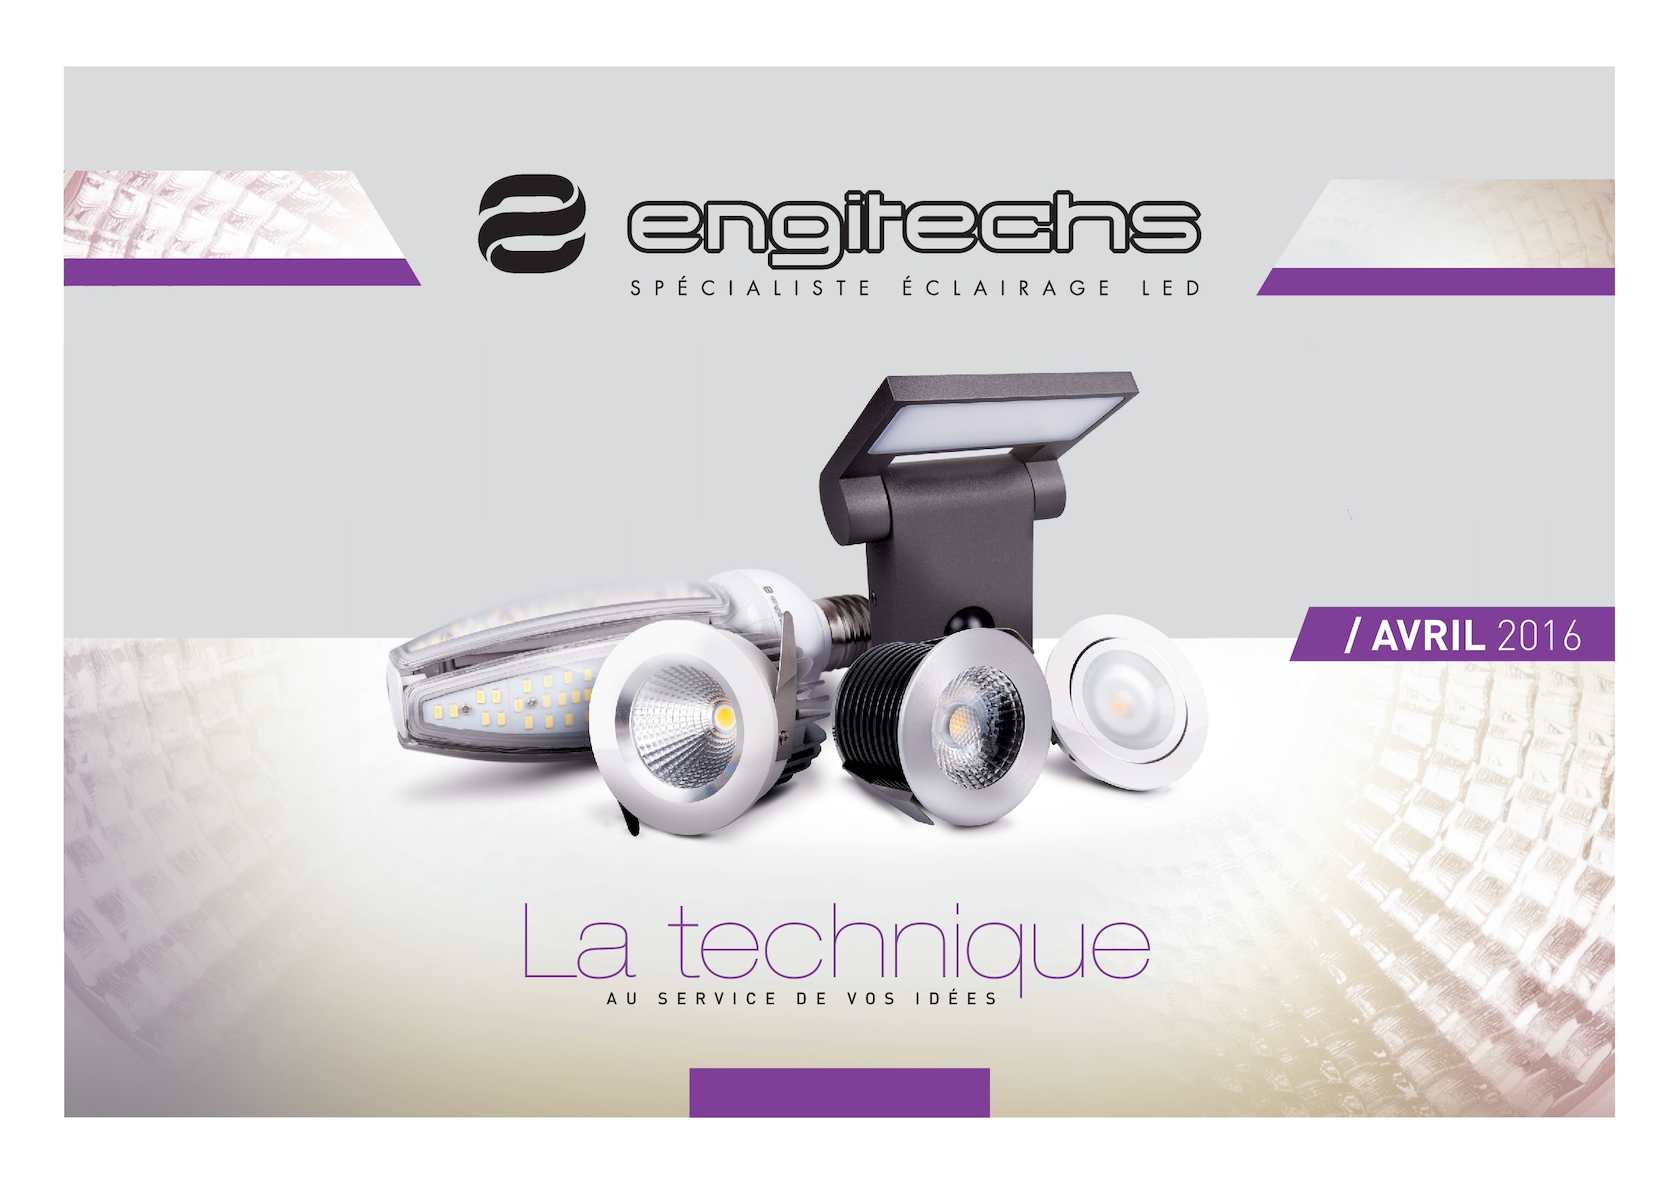 Projecteur Led Extérieur 50w High Power Eclairage Blanc 24vdc Calaméo Catalogue Engitechs